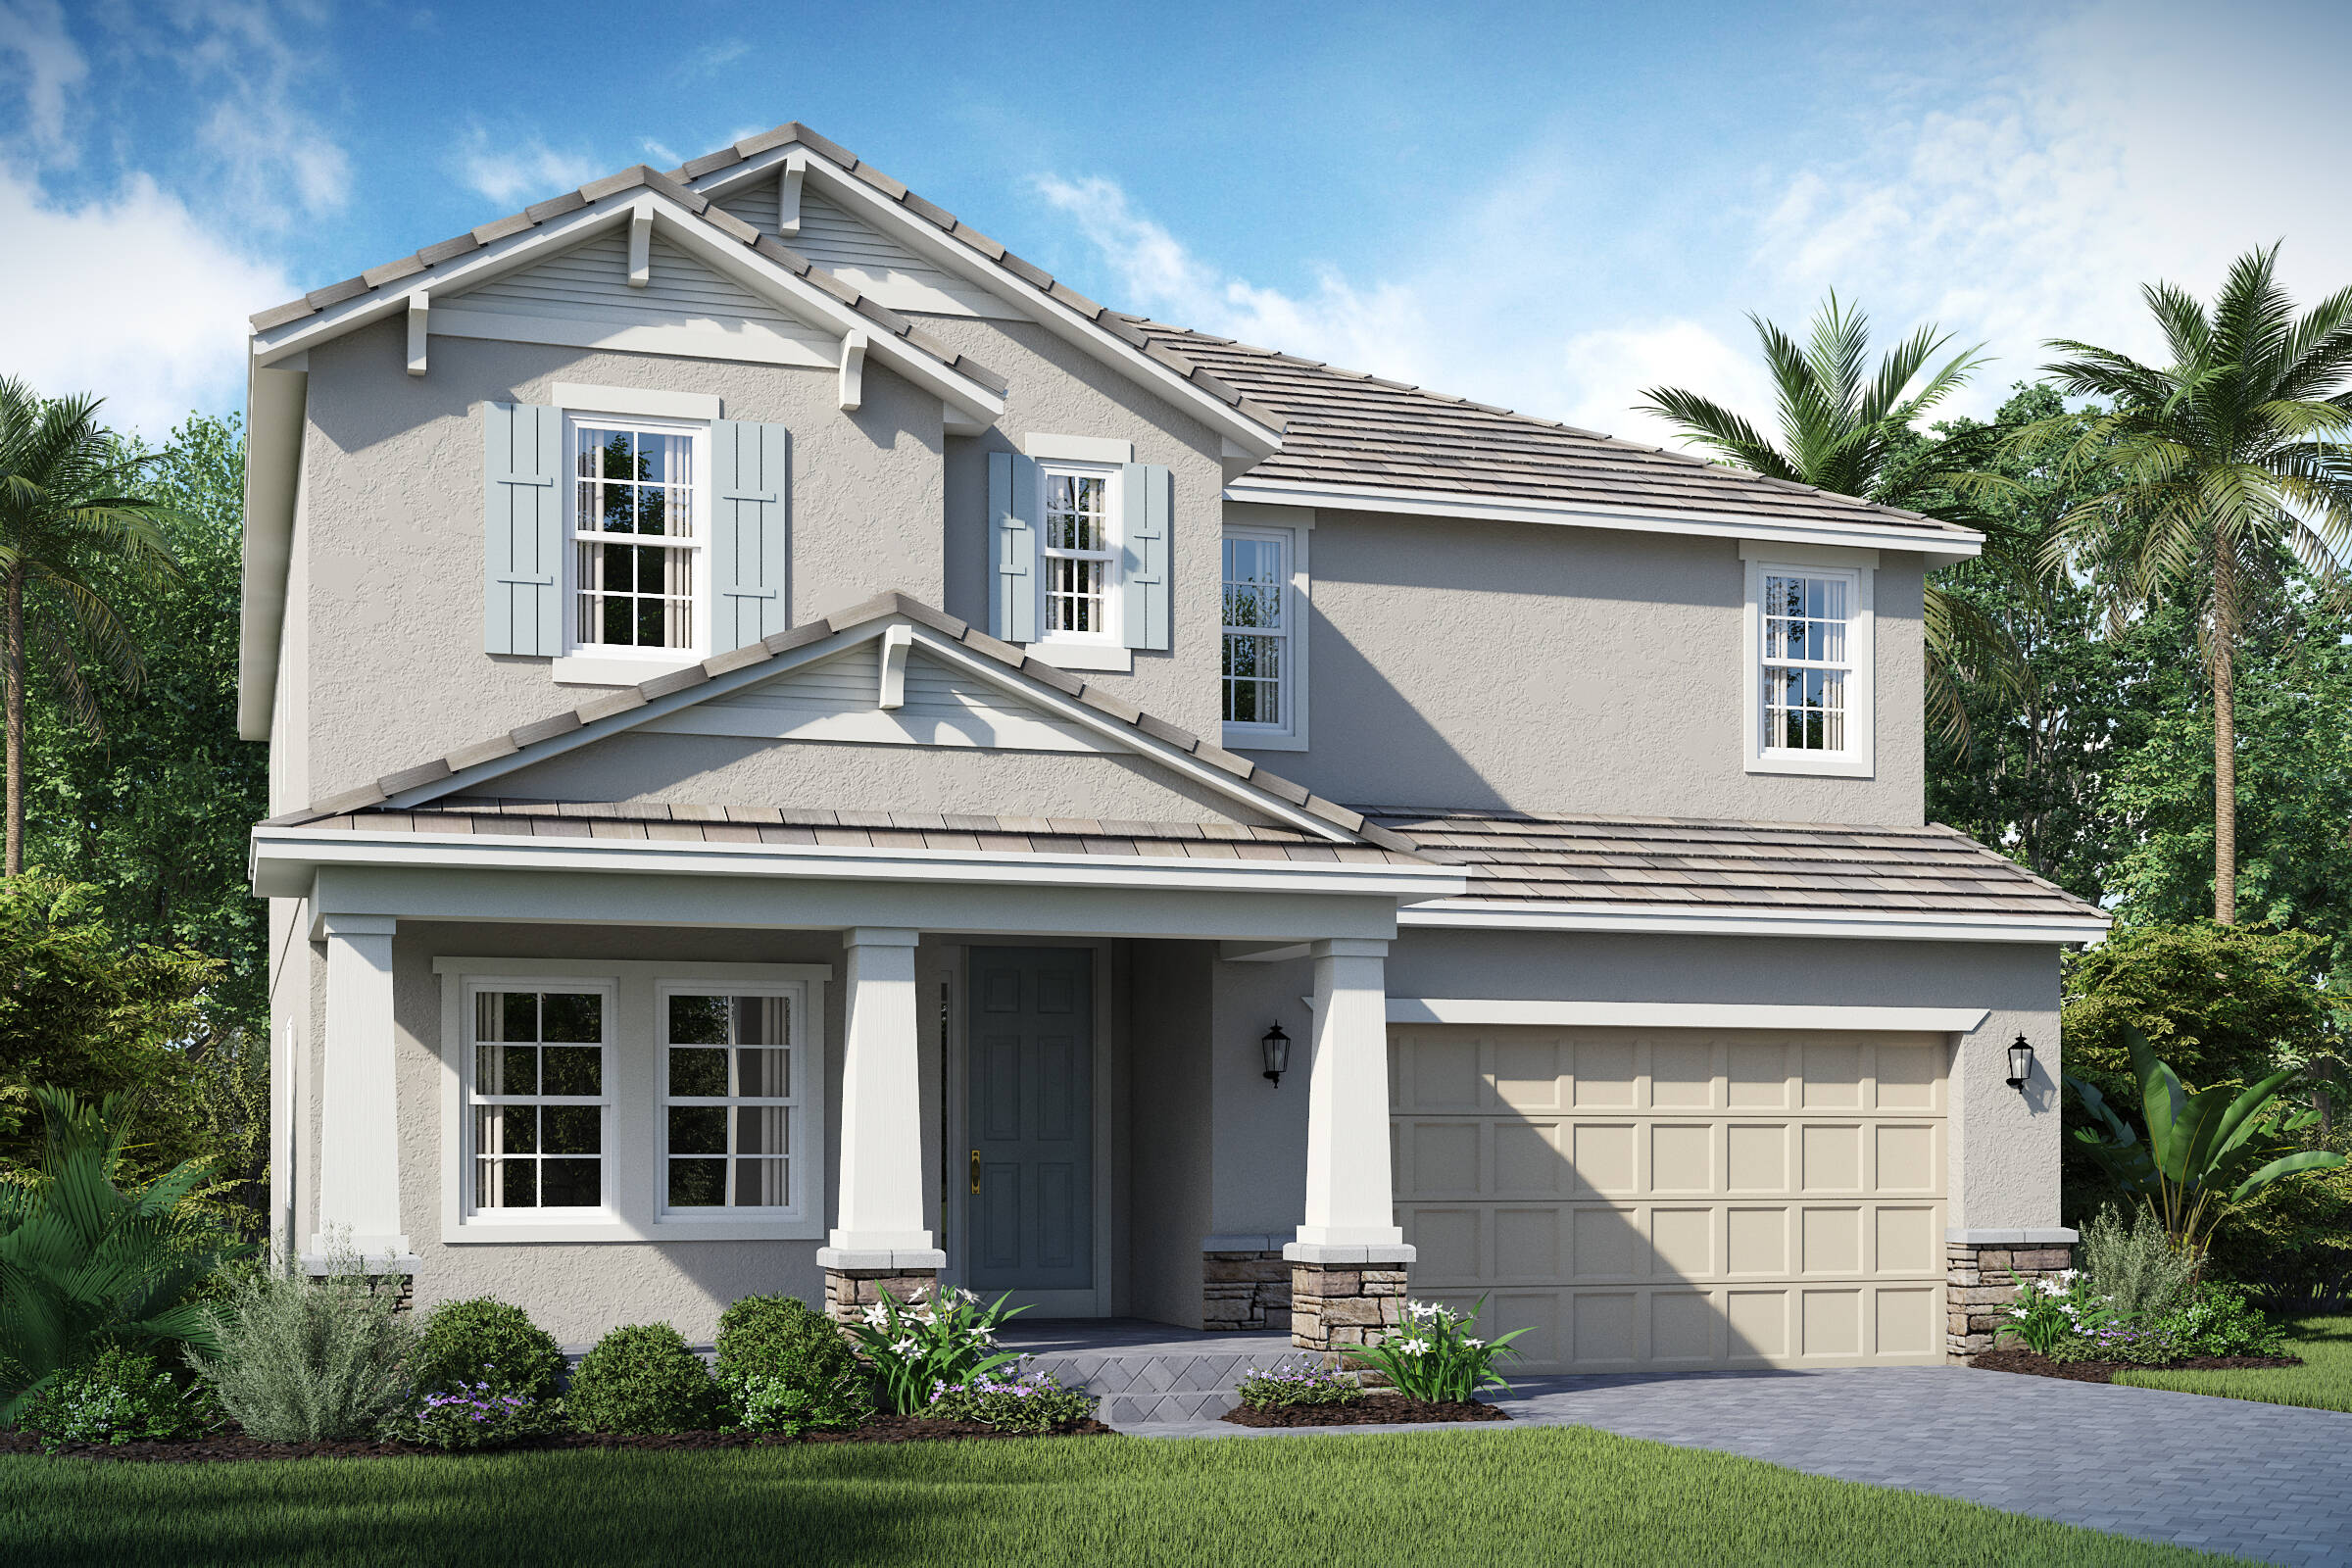 Michelson C Exterior Lake Florence Preserve New Homes In Orlando Florida ...